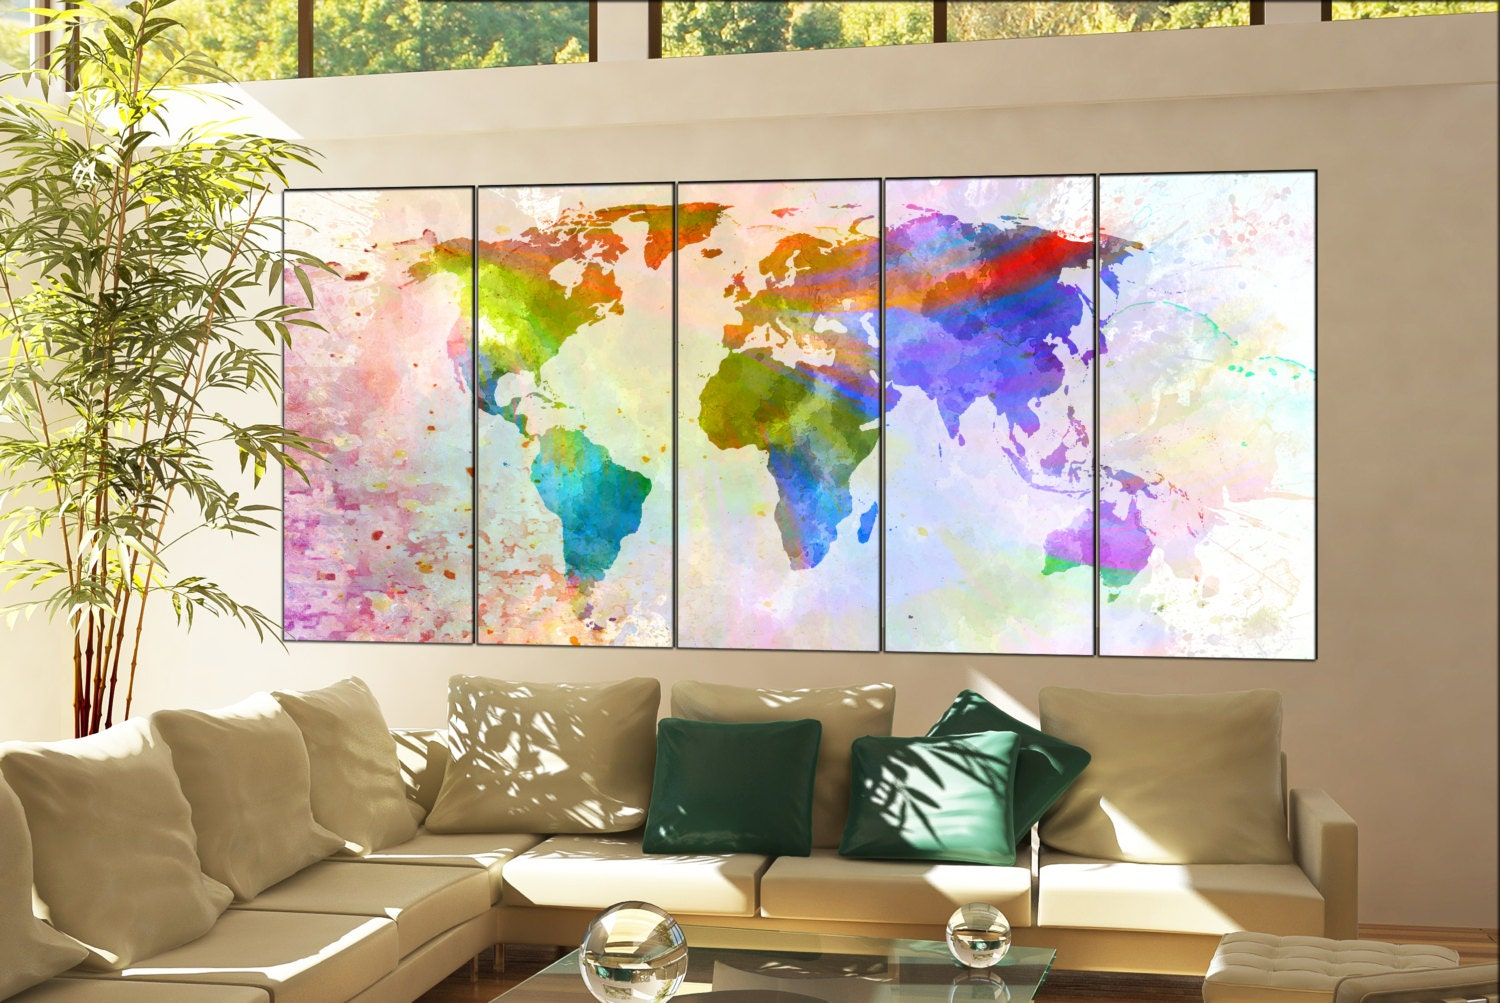 Office Decor World Map Print On Canvas Wall Art Office Decor World Map  Print Artwork Large Office Decor World Map Home Decoration 5 Panel